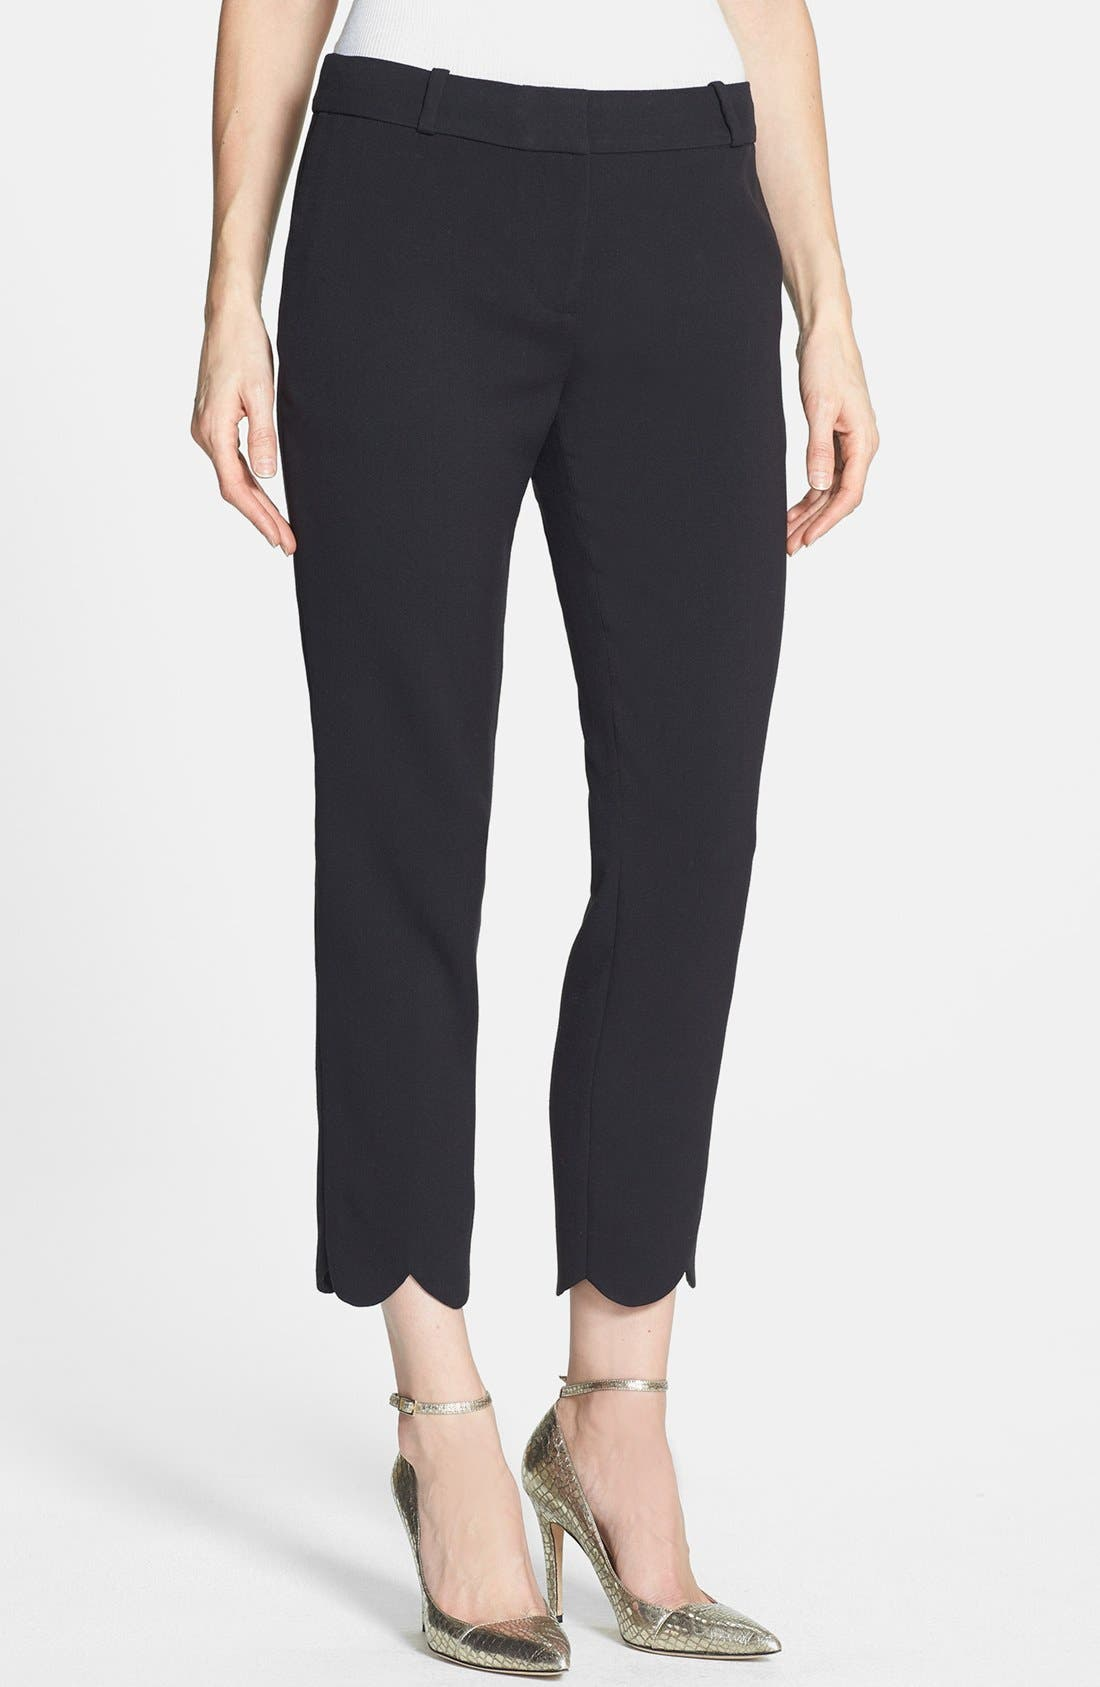 Alternate Image 1 Selected - kate spade new york 'jackie' scalloped hem capri pants